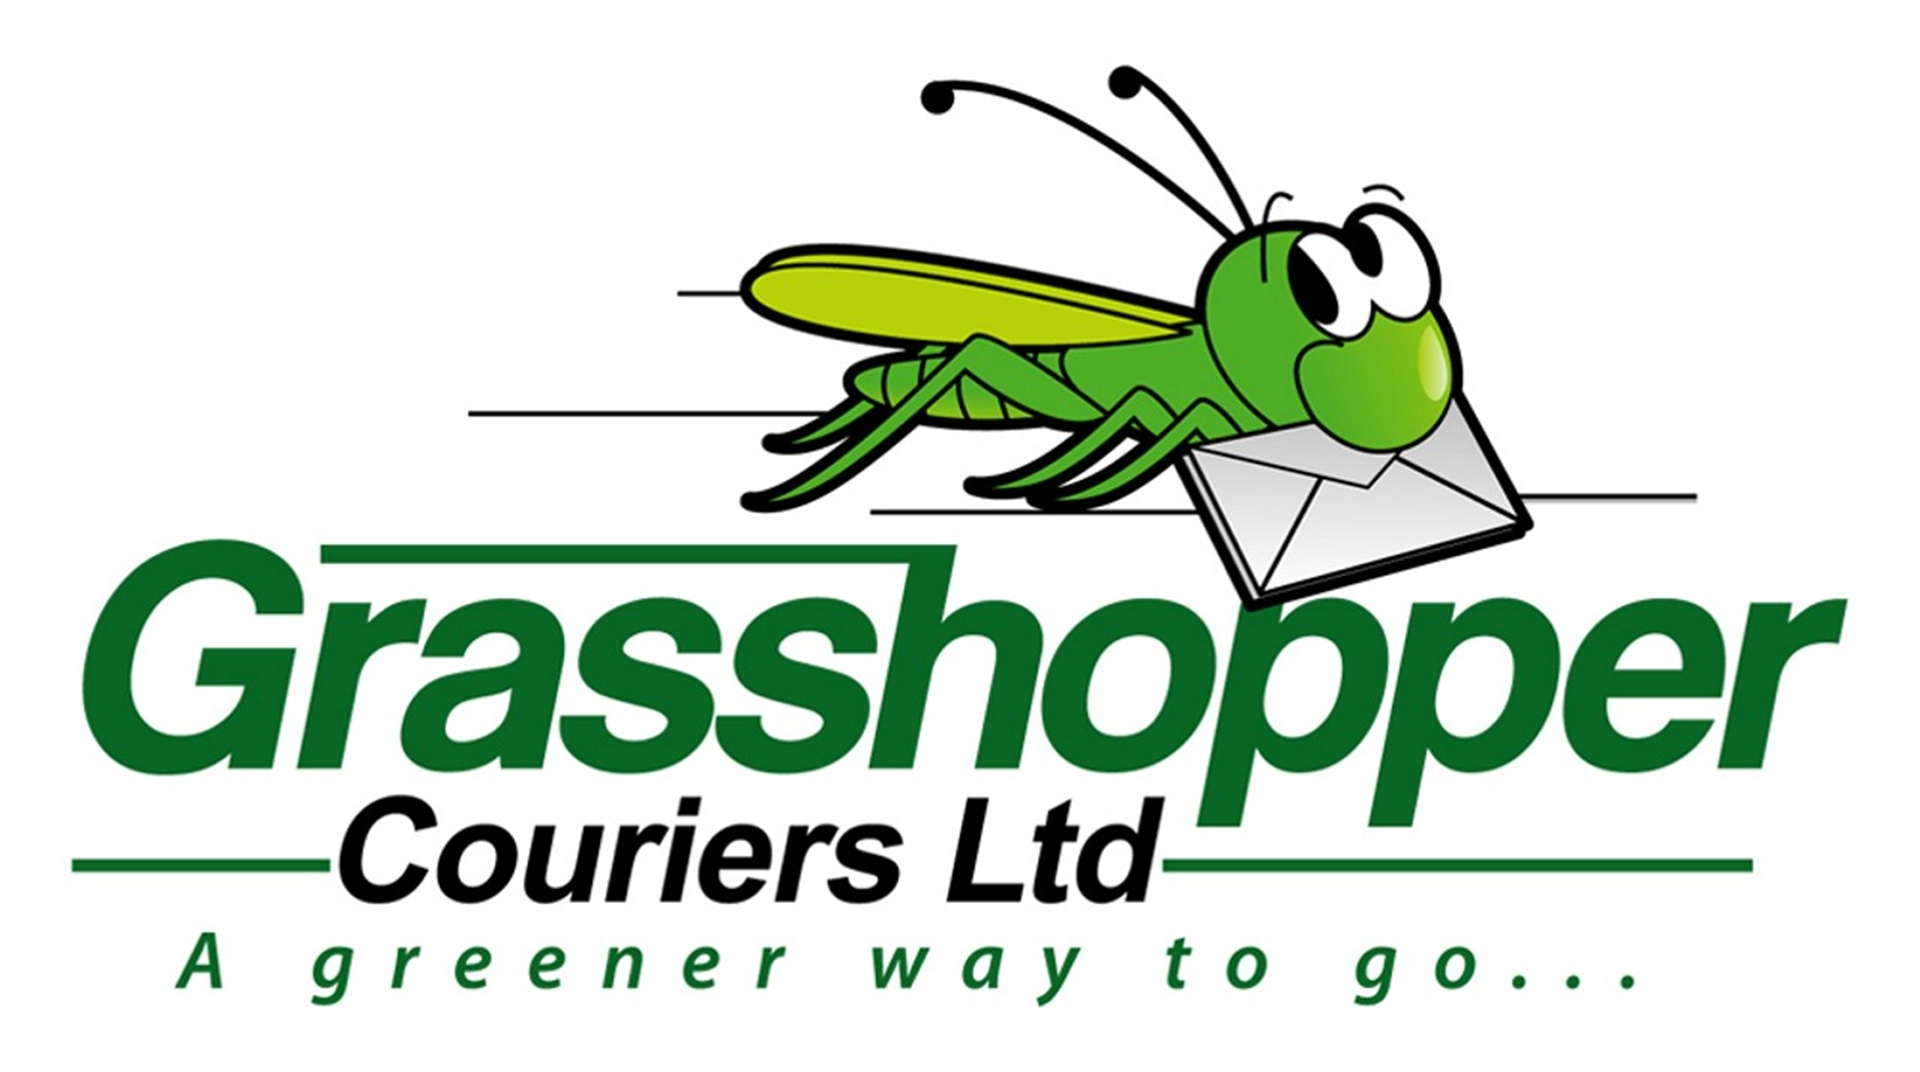 grasshopper couriers